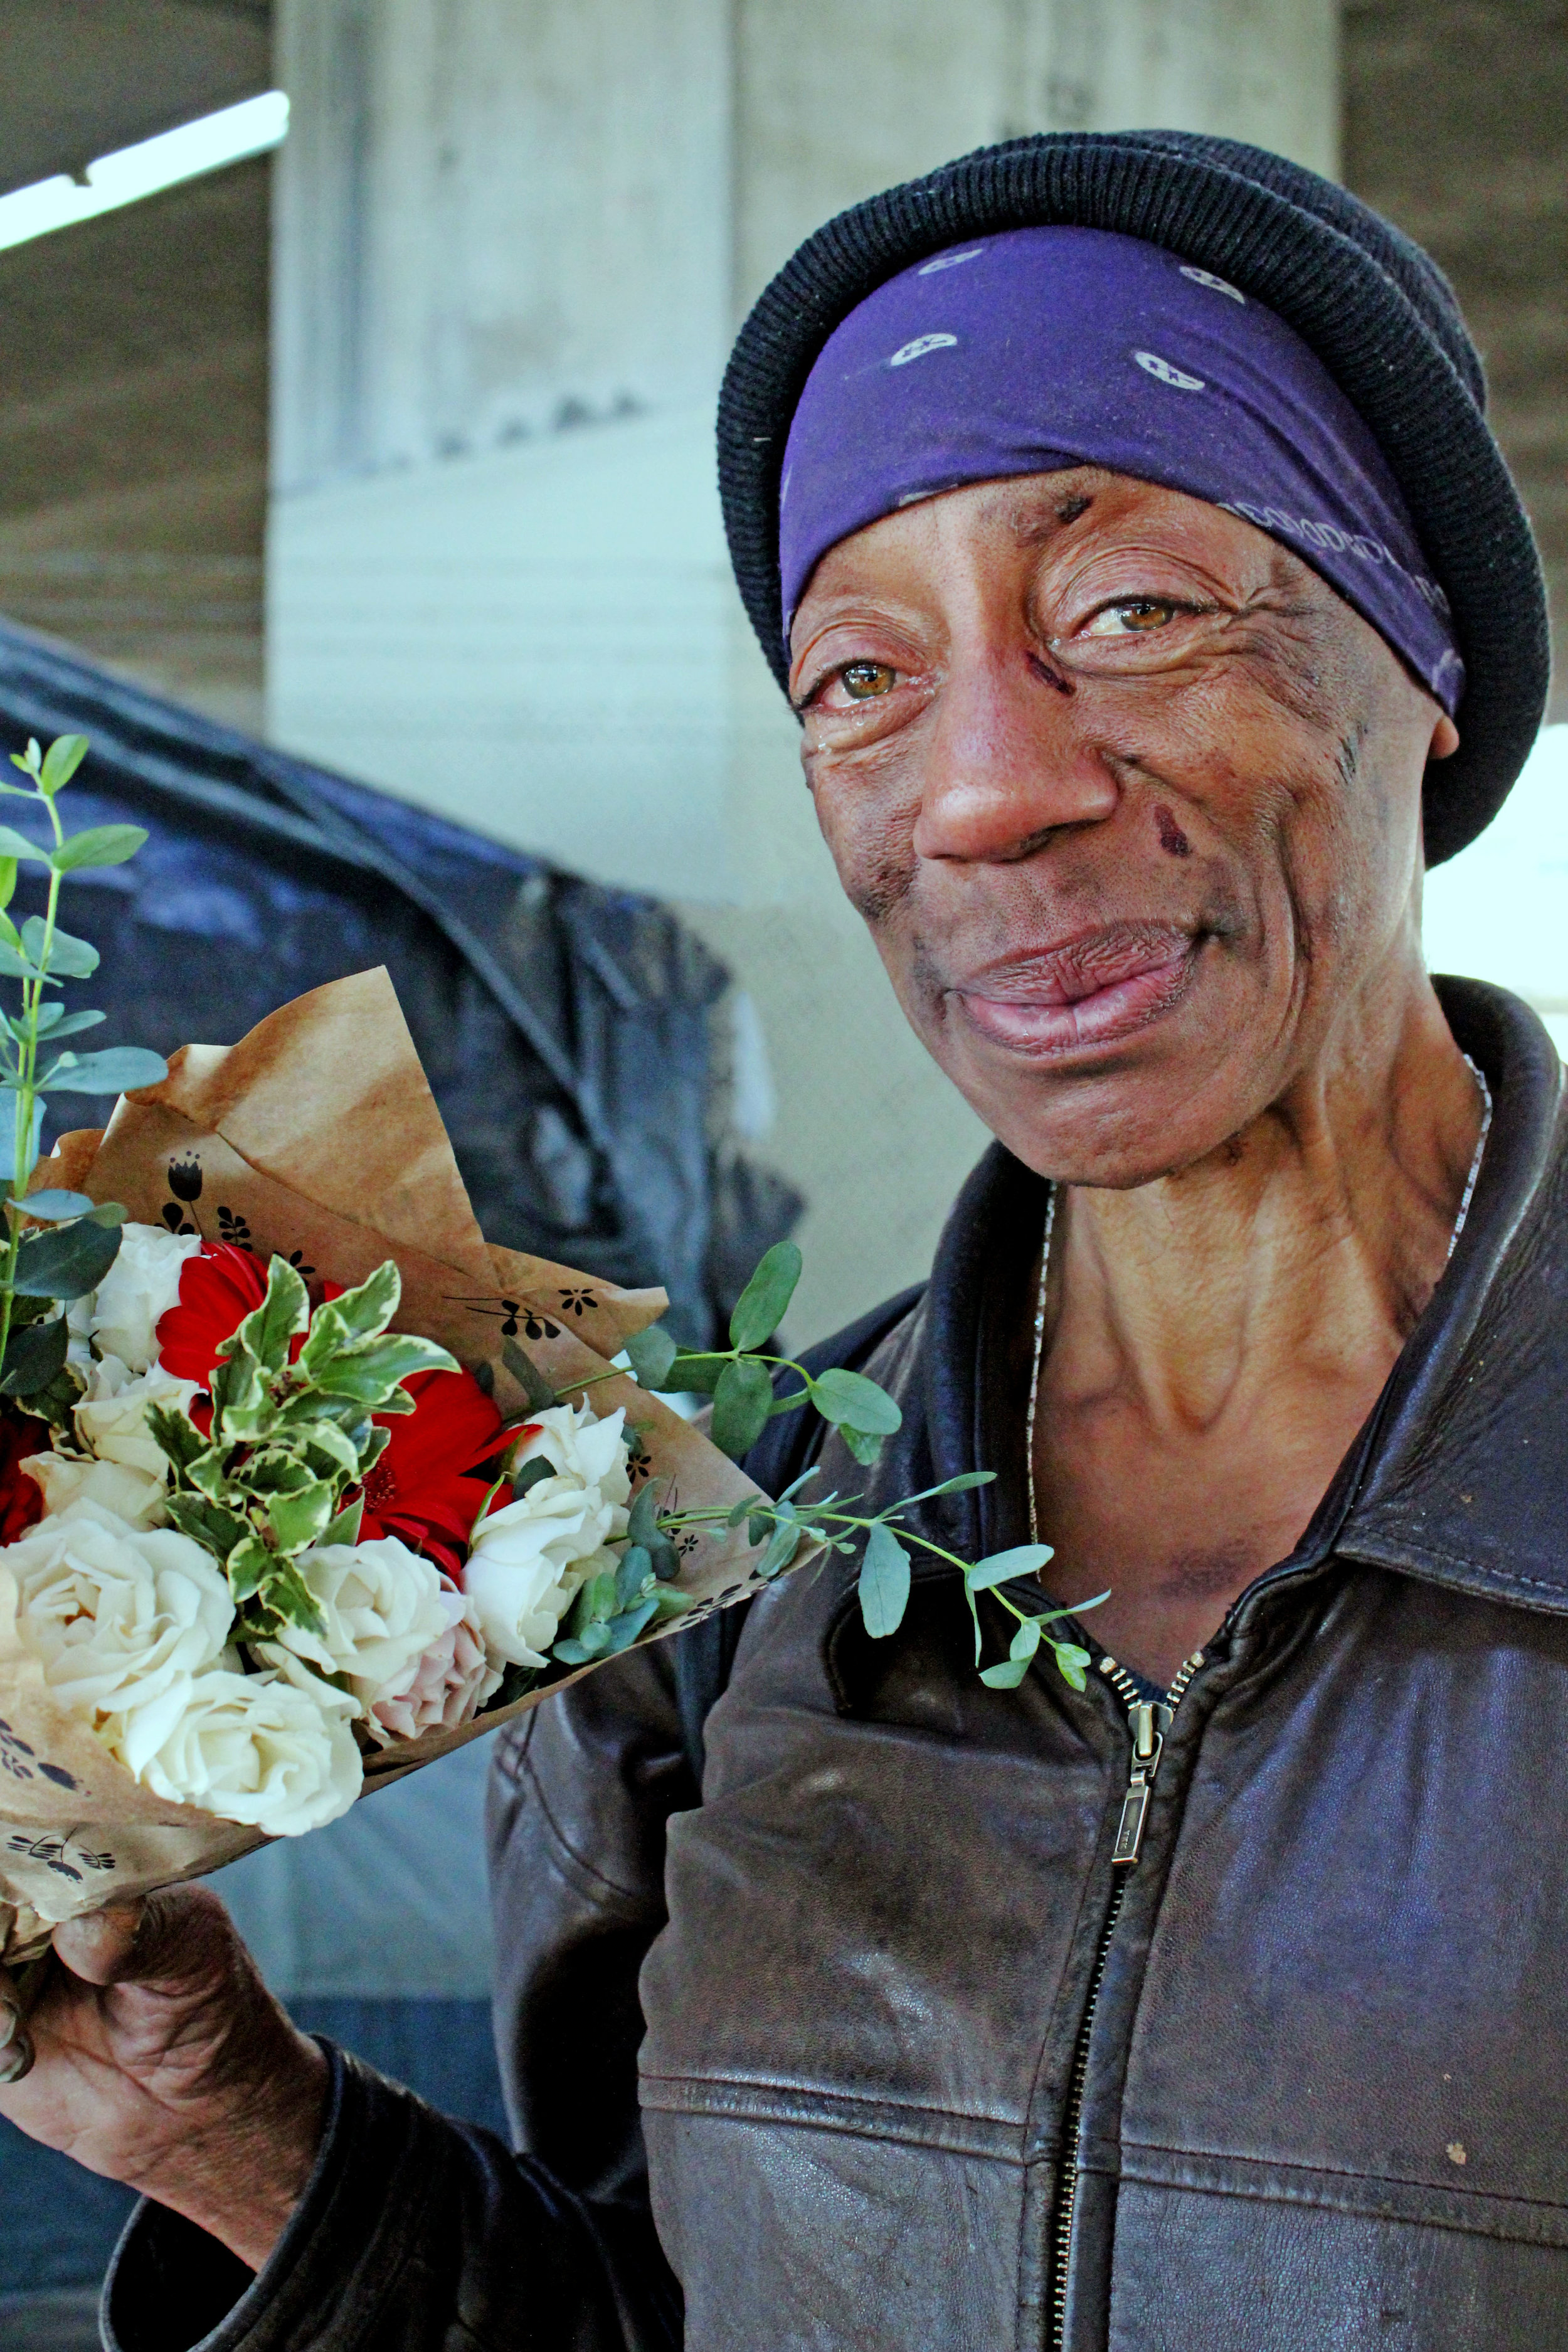 "Two weeks ago on Valentine's Day a group of activists and graffiti artists banded together to distribute tents and flowers to the Northgate homeless community in Oakland, CA. Evelyn, pictured here, is a Northgate resident who has been homeless for over 10 years. ""I had my own place, but my ex-husband stabbed me eight times, so I lost everything and I haven't been able to regroup,"" she says."